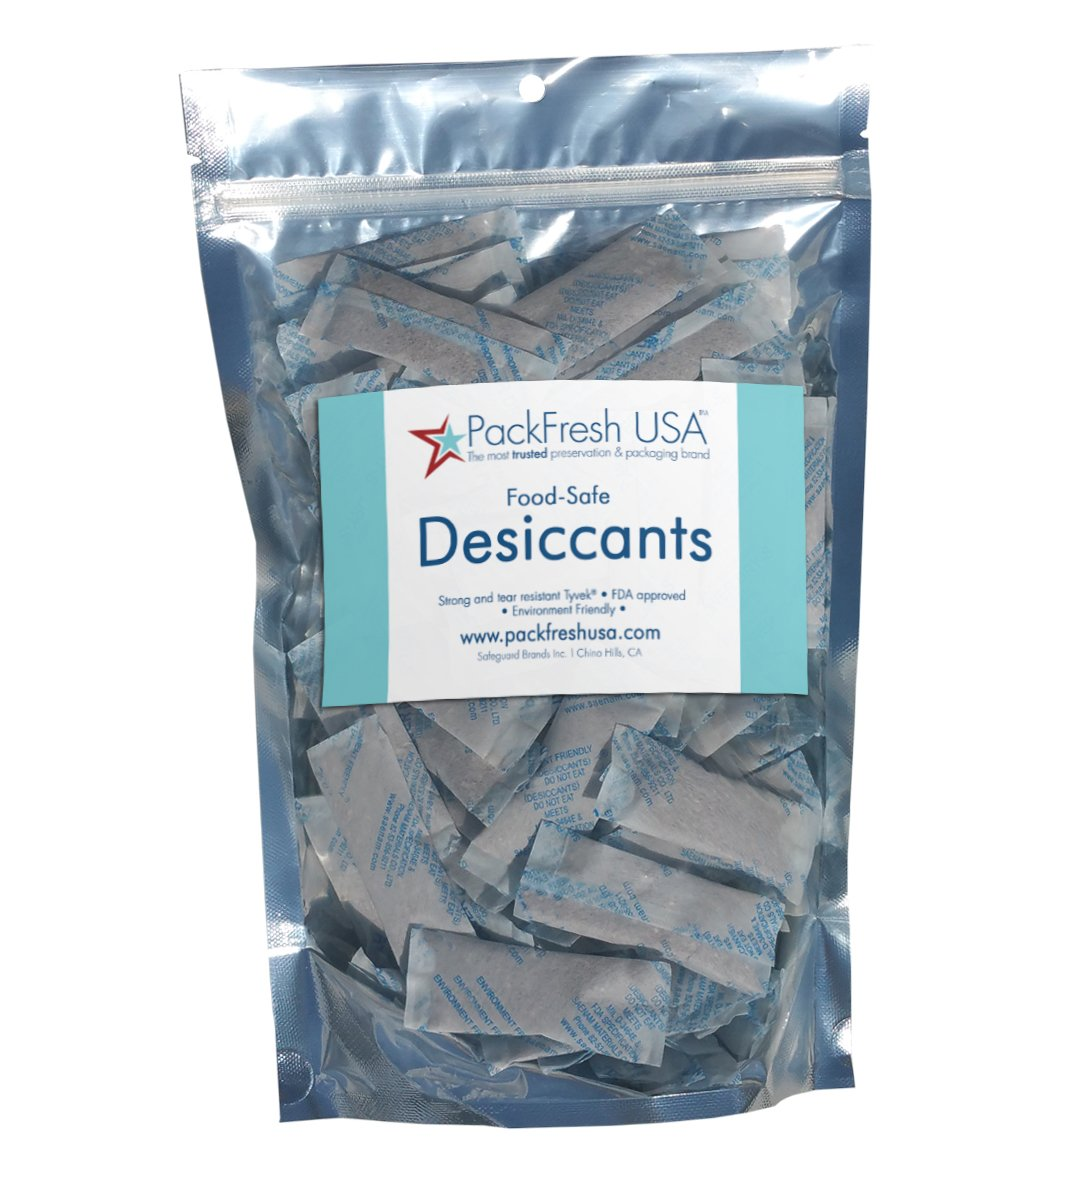 PackFreshUSA: 5 Gram Premium Food-Safe Desiccants - Non-Toxic - Reusable - Long-Term Storage - Moisture Absorber – 100 Pack